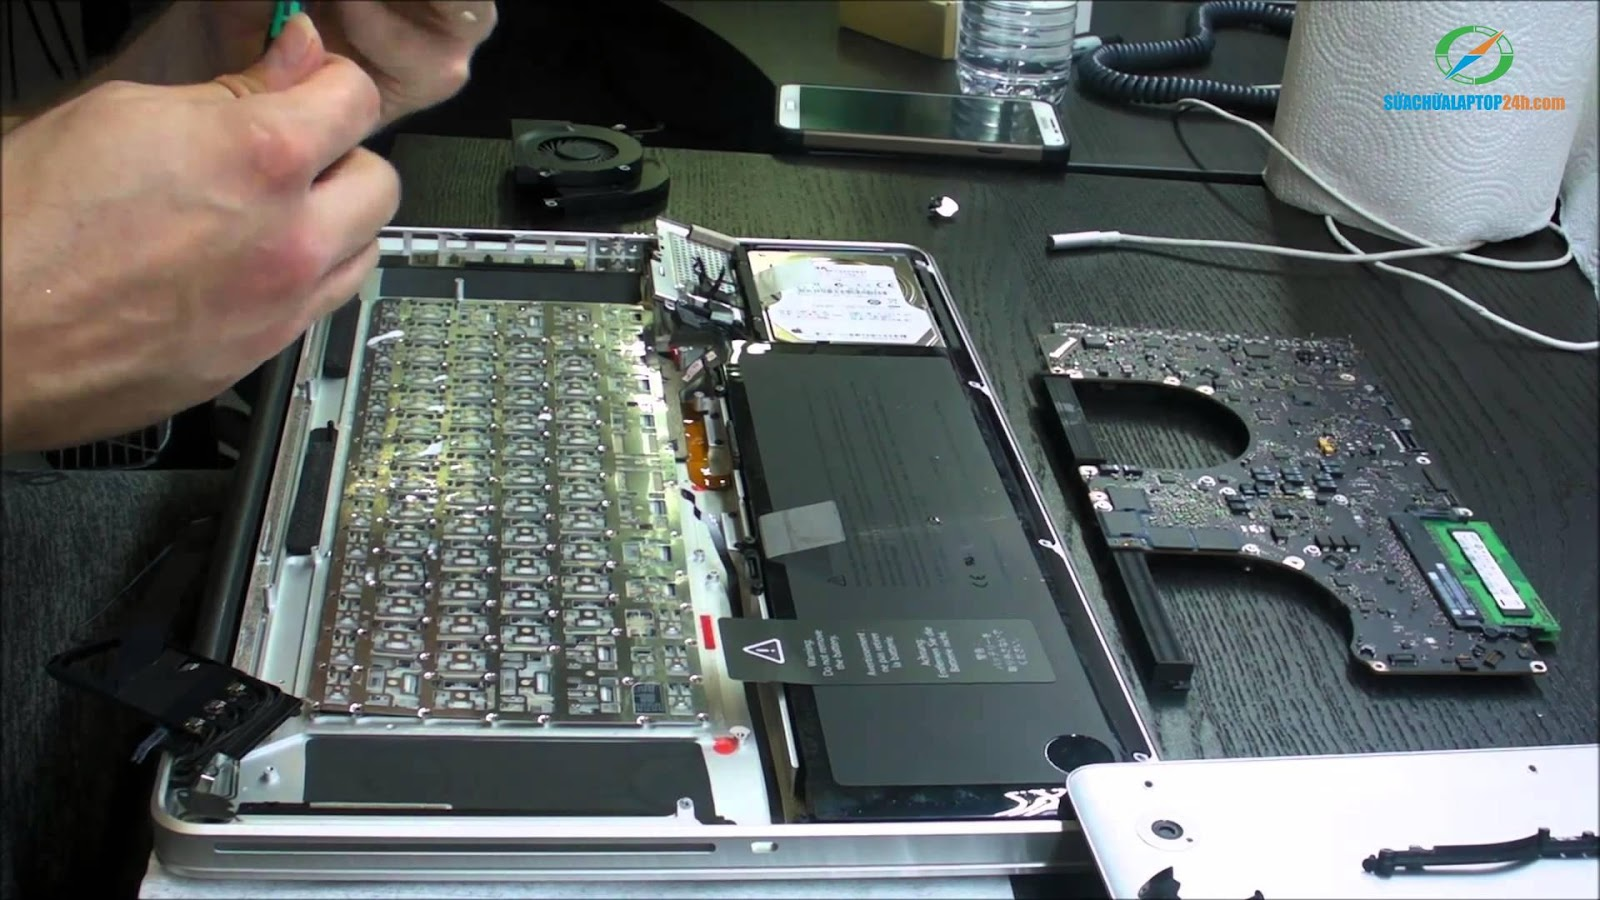 MACBOOK-KEYBOARD-REPLACEMENT-at-SUACHUALAPTOP24h